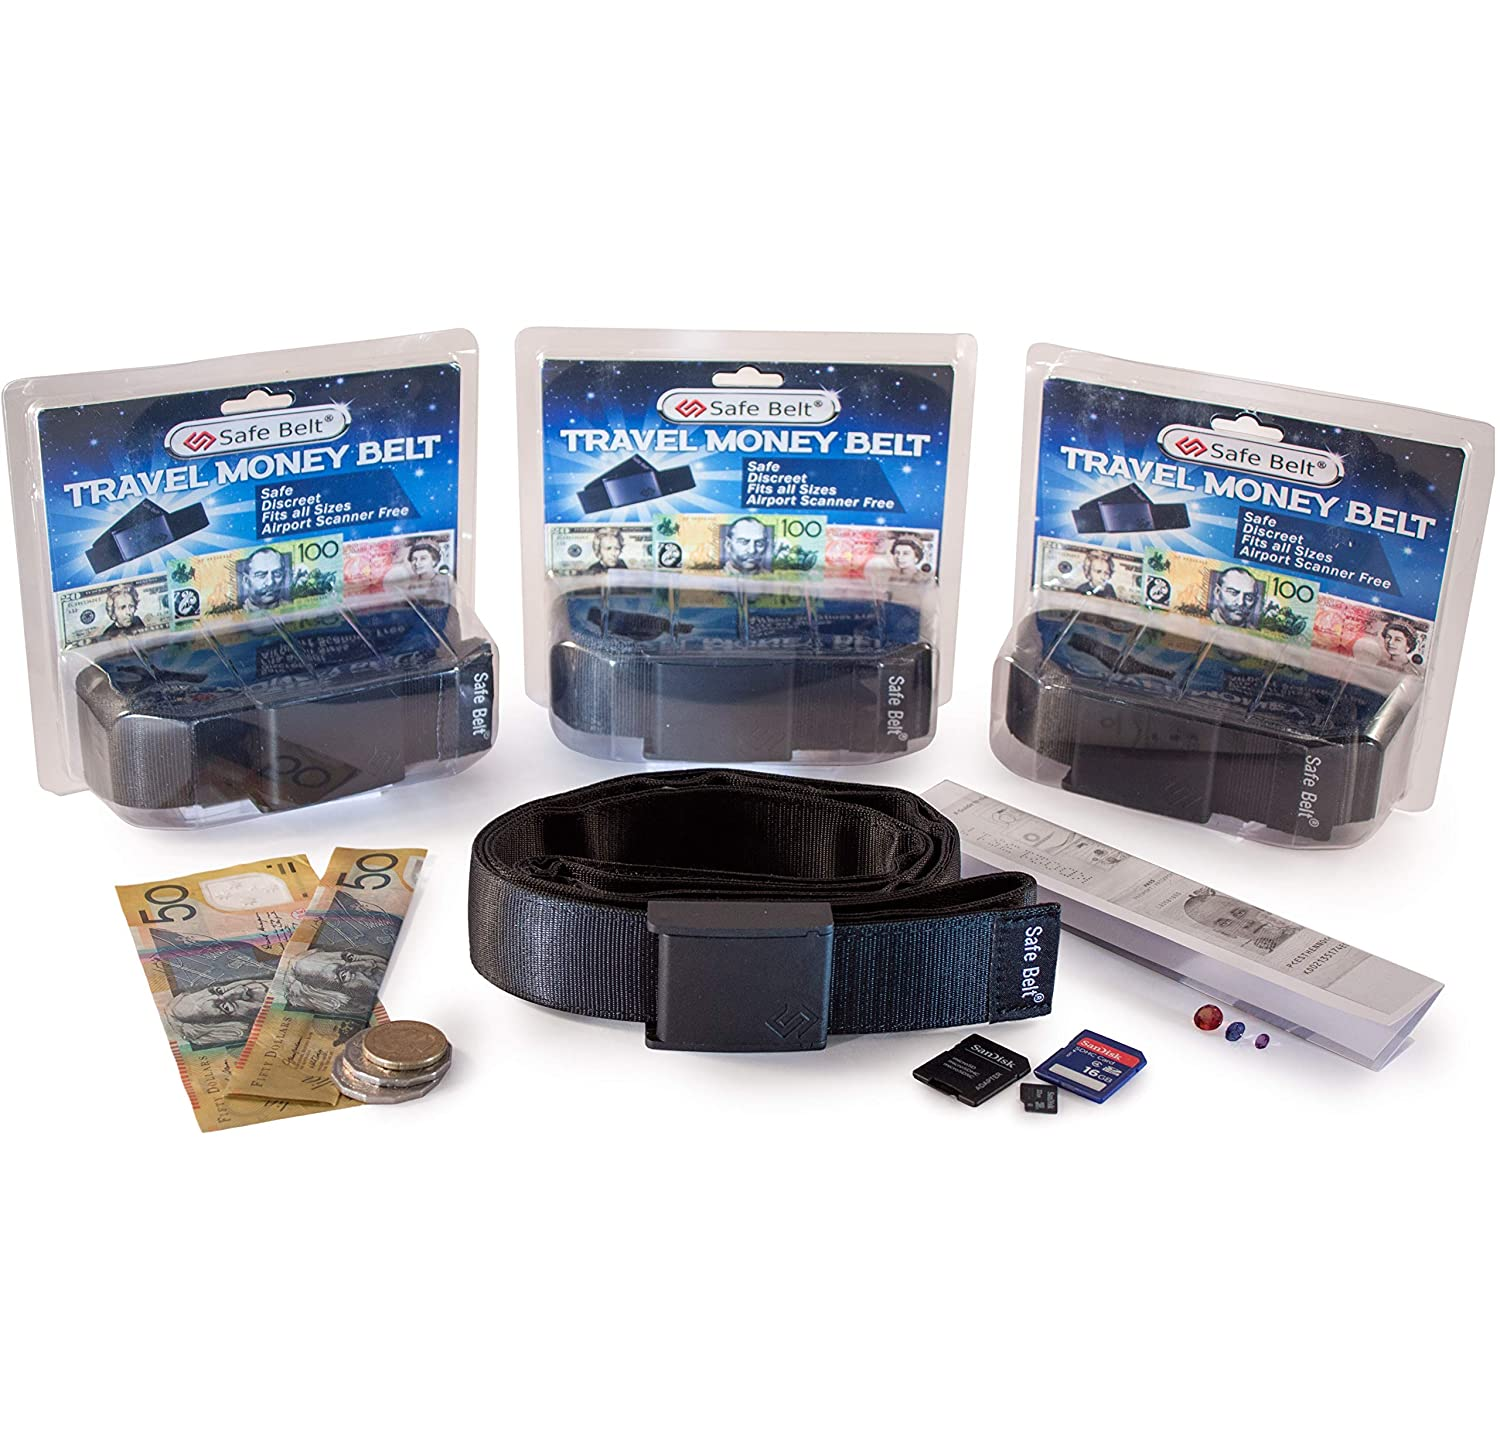 Travel Money Belt with Hidden Pocket Airport Security Friendly No Metallic Parts Clever and Discreet Way to Keep your Valuables Safe Totally Undetectable to the Public